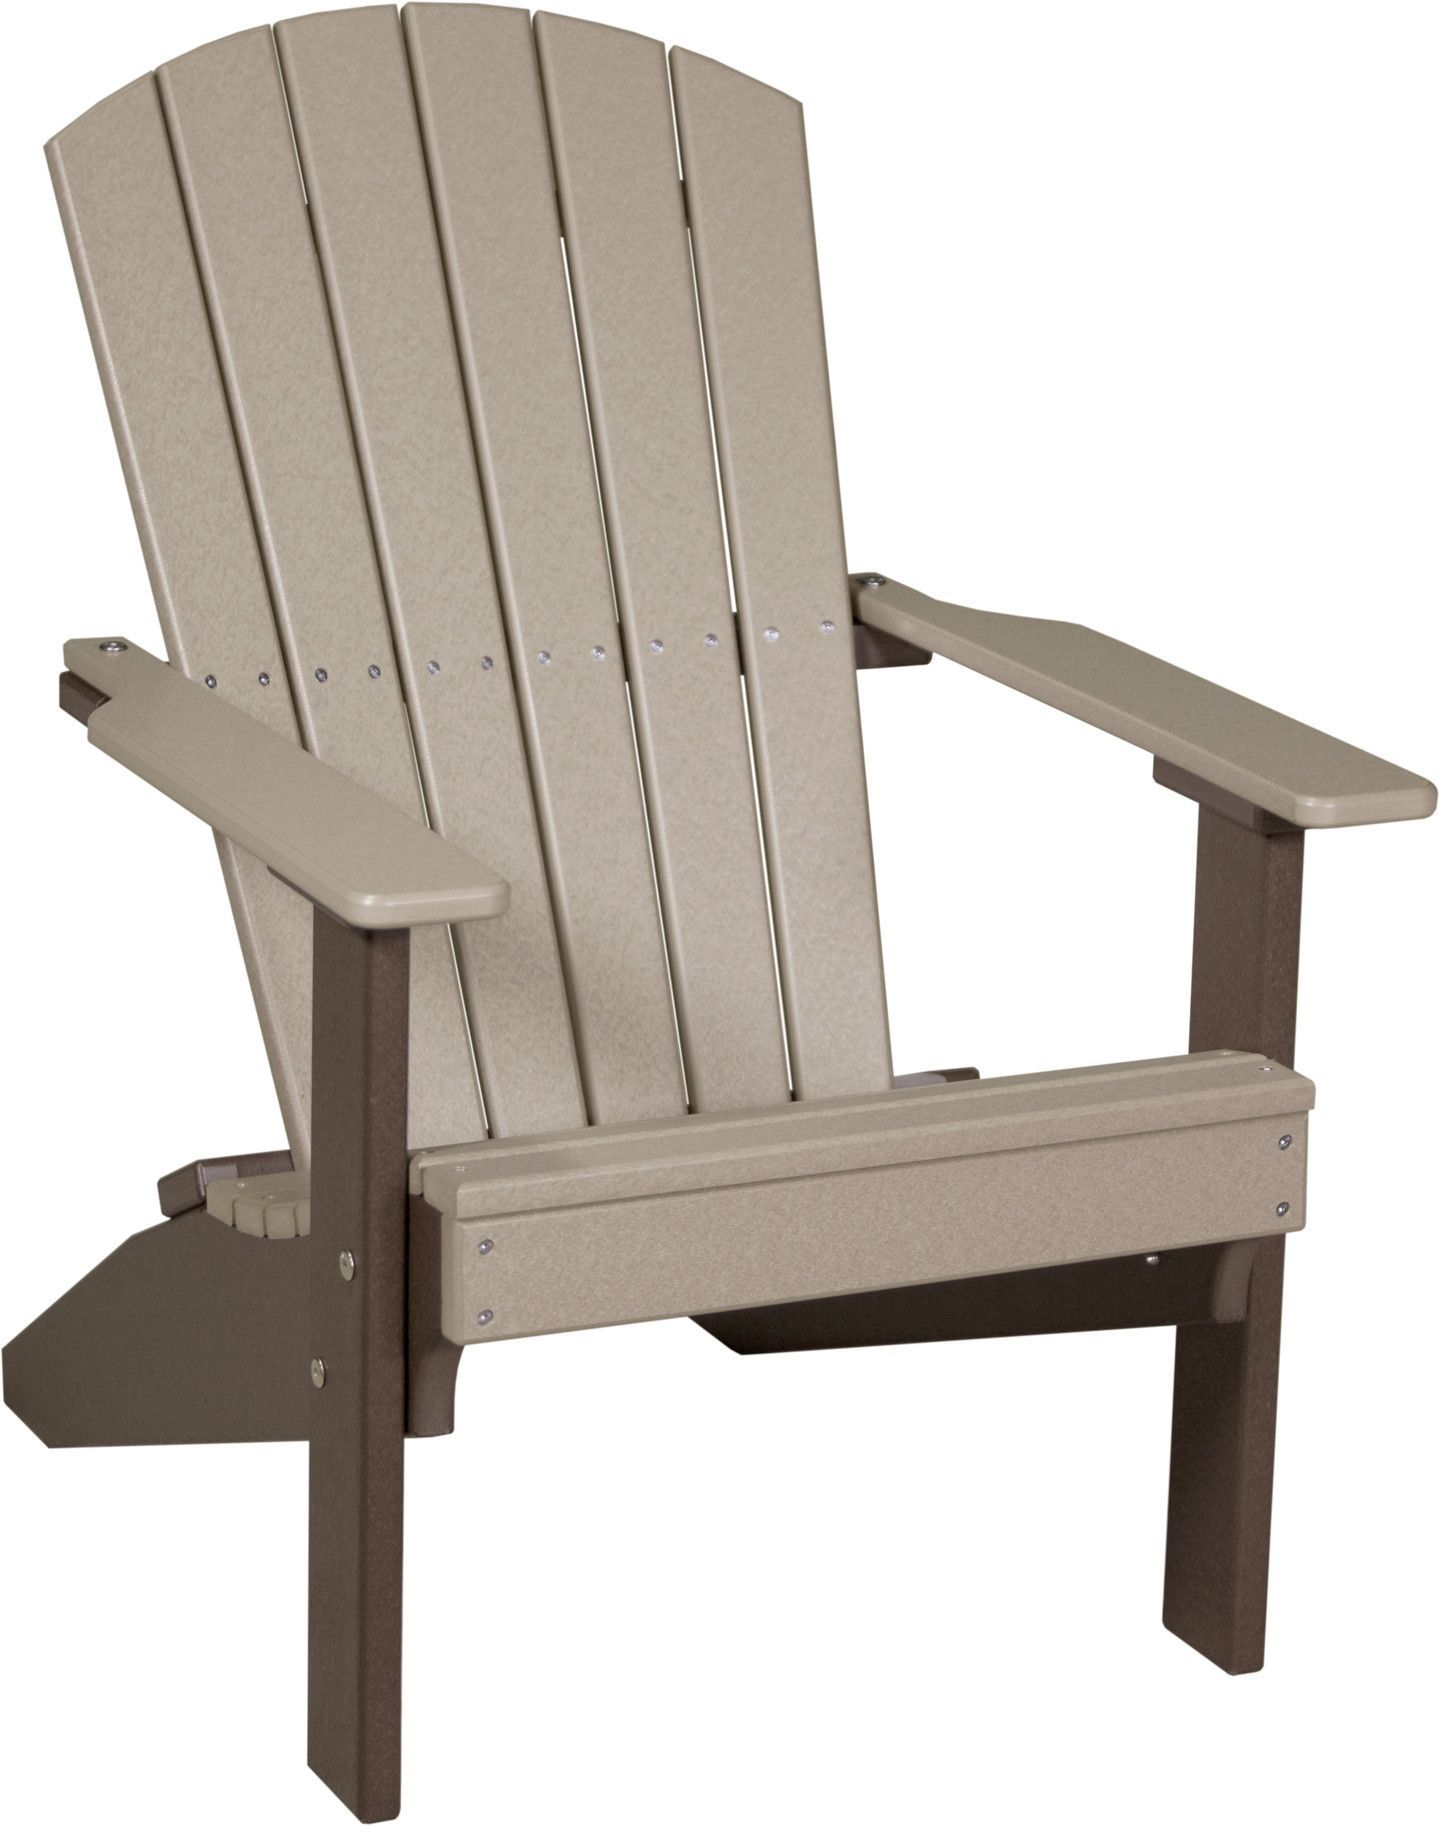 luxcraft lakeside recycled plastic adirondack chair plastic